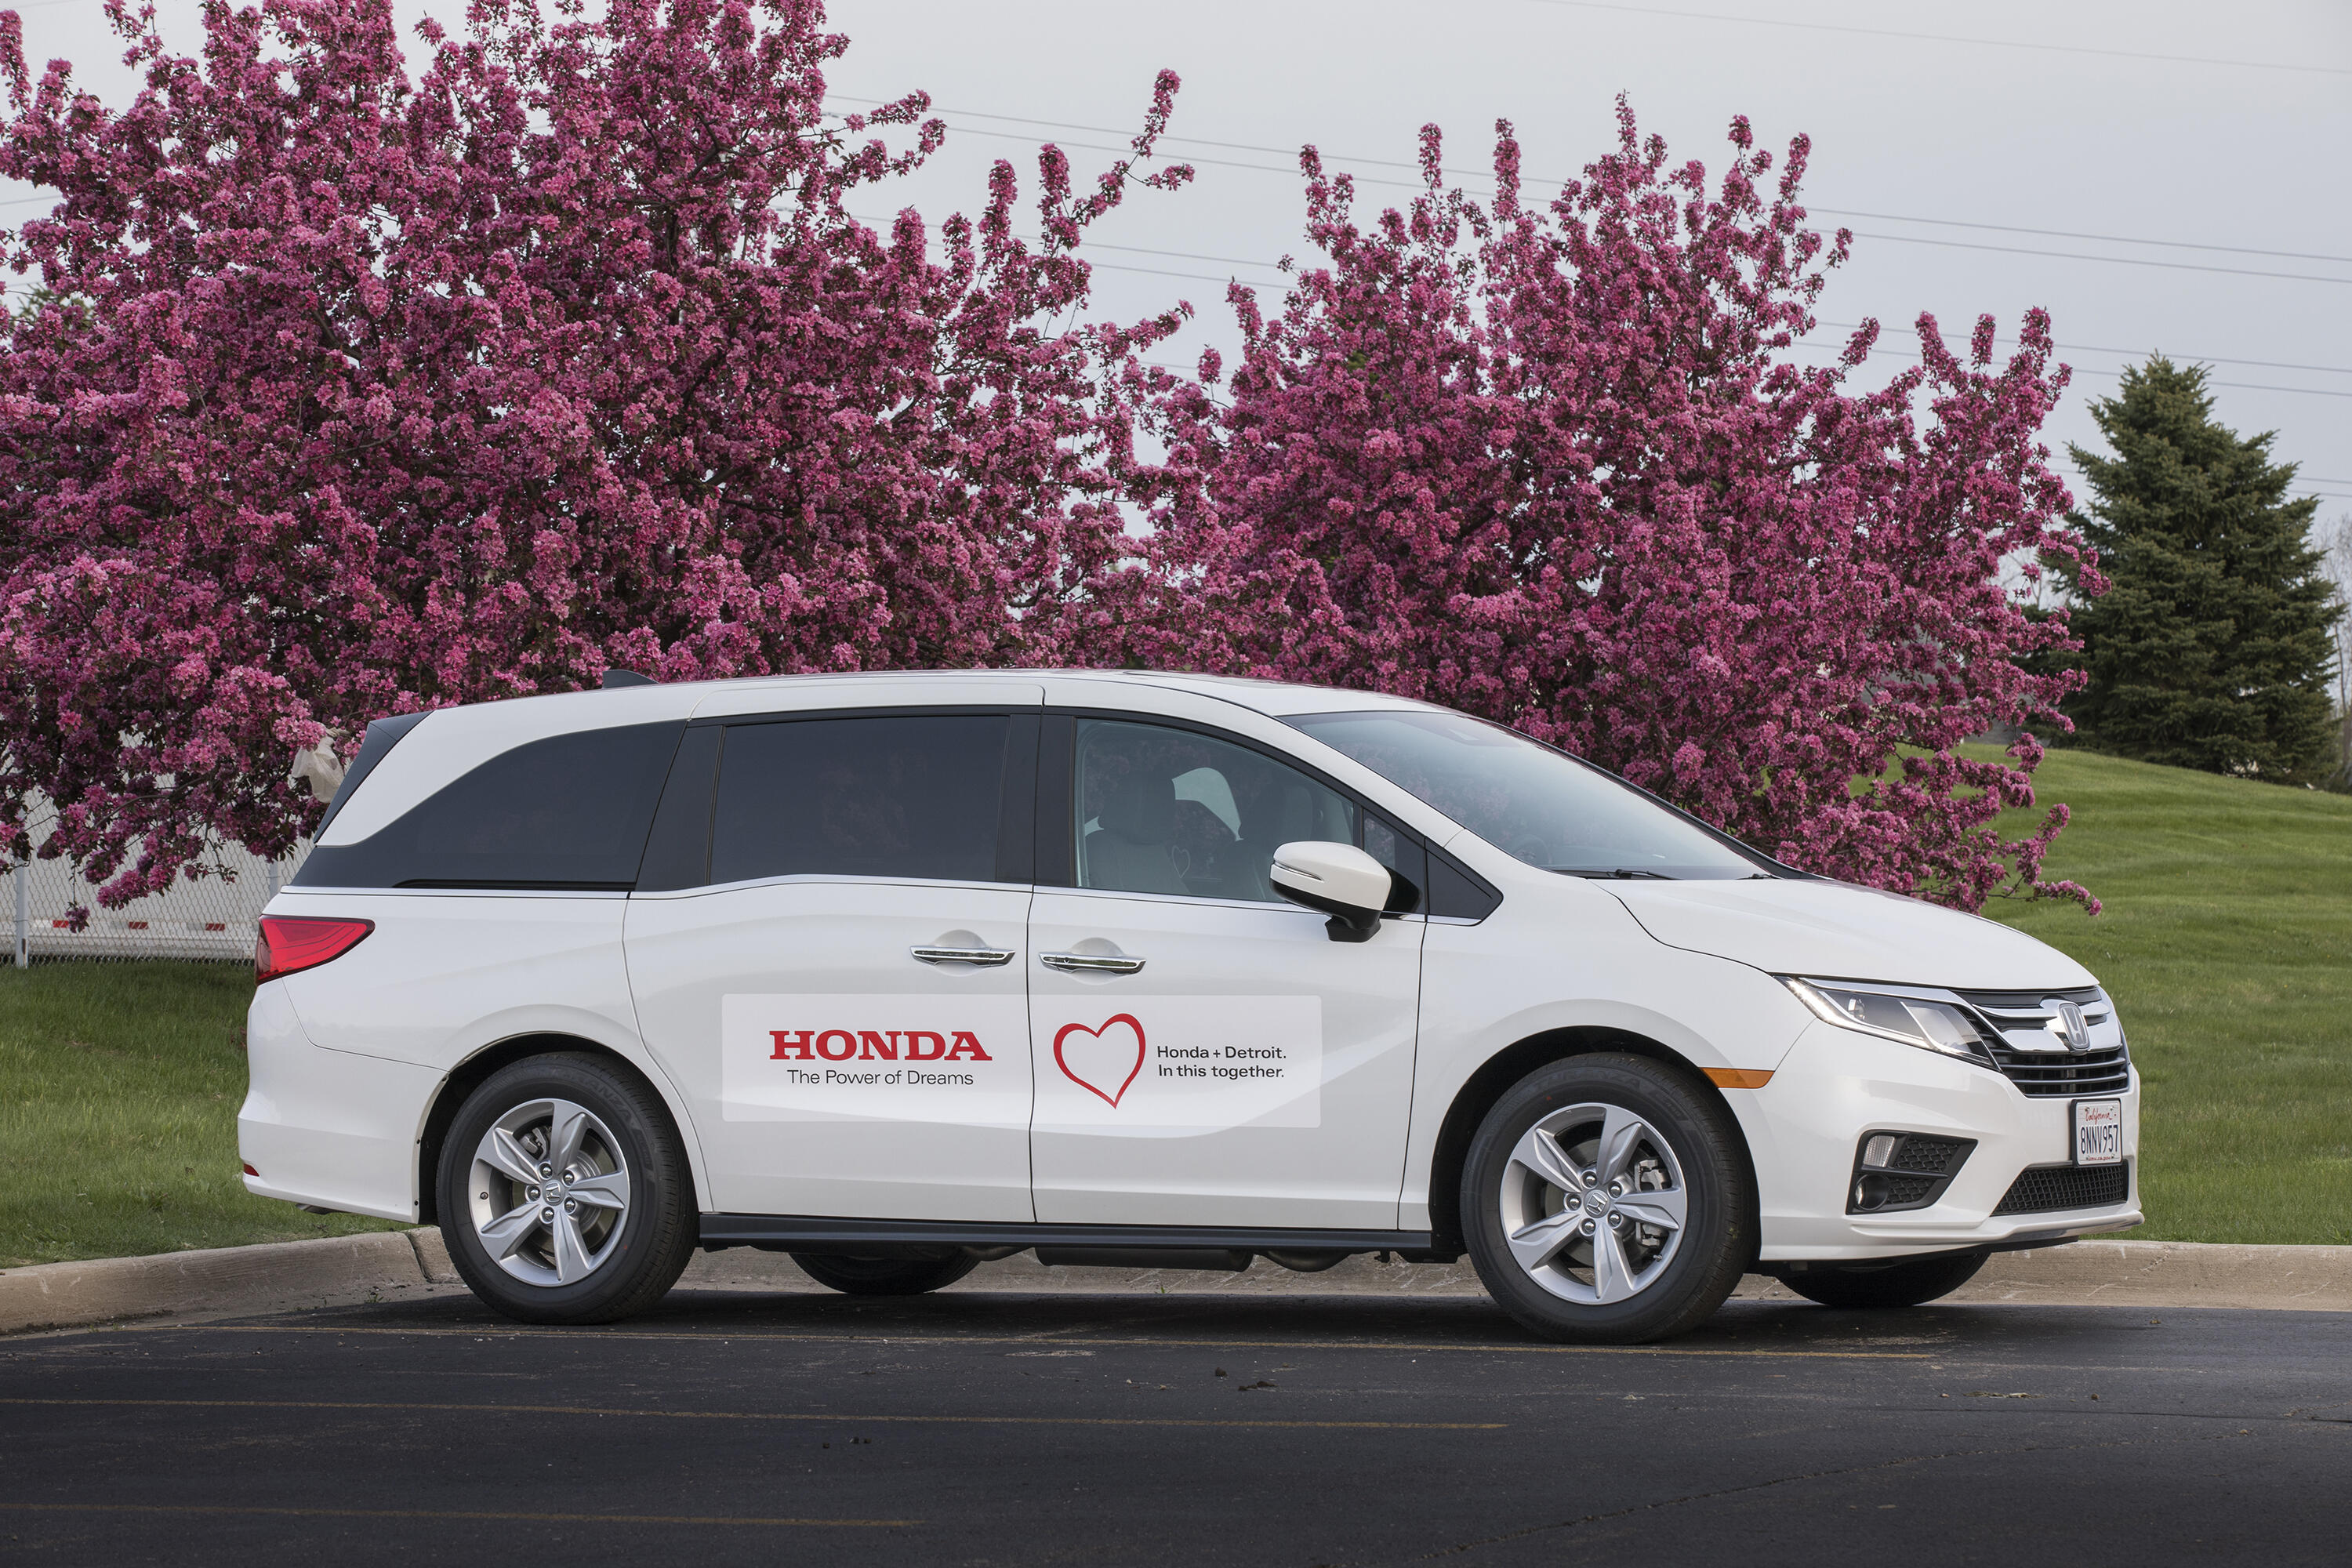 Modified Honda Odyssey for COVID-19 transport